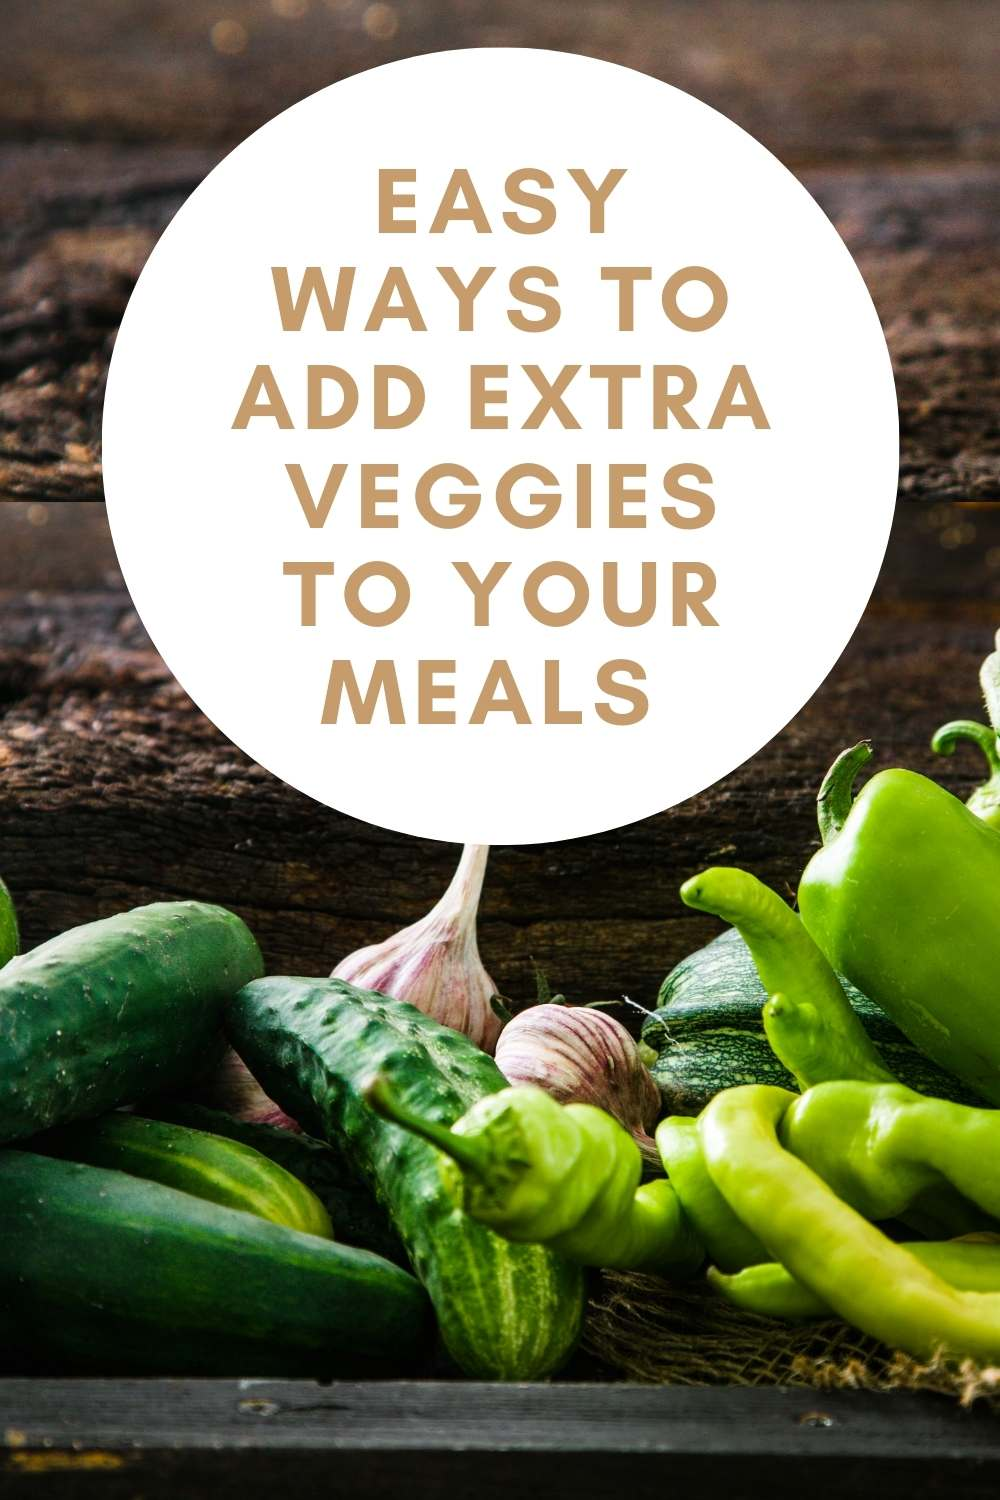 Easy Ways To Add Veggies Into Your Kids' Meals